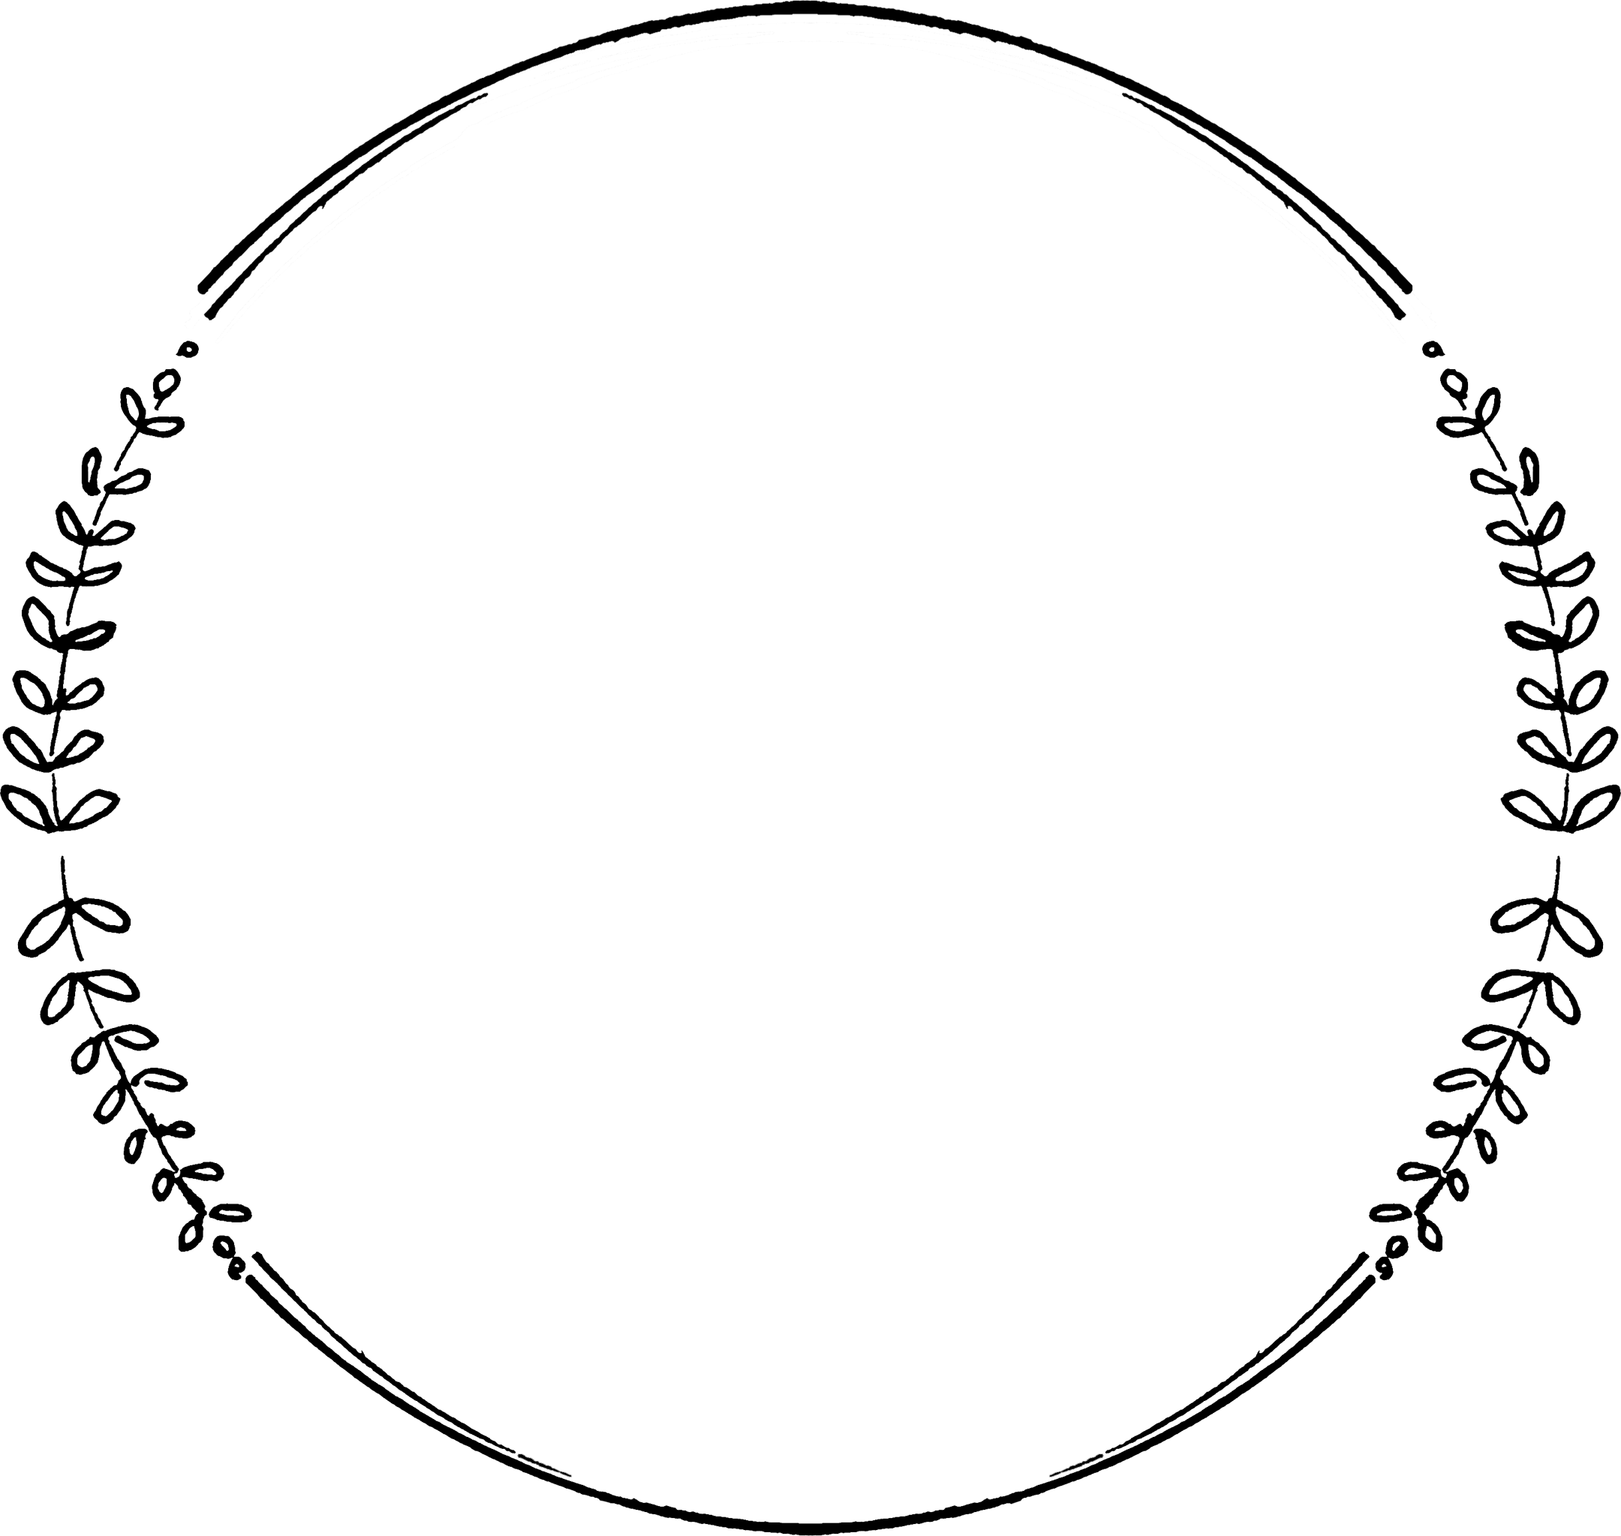 Circle Png Downloads Black Wreath Circle Frames Clip Art